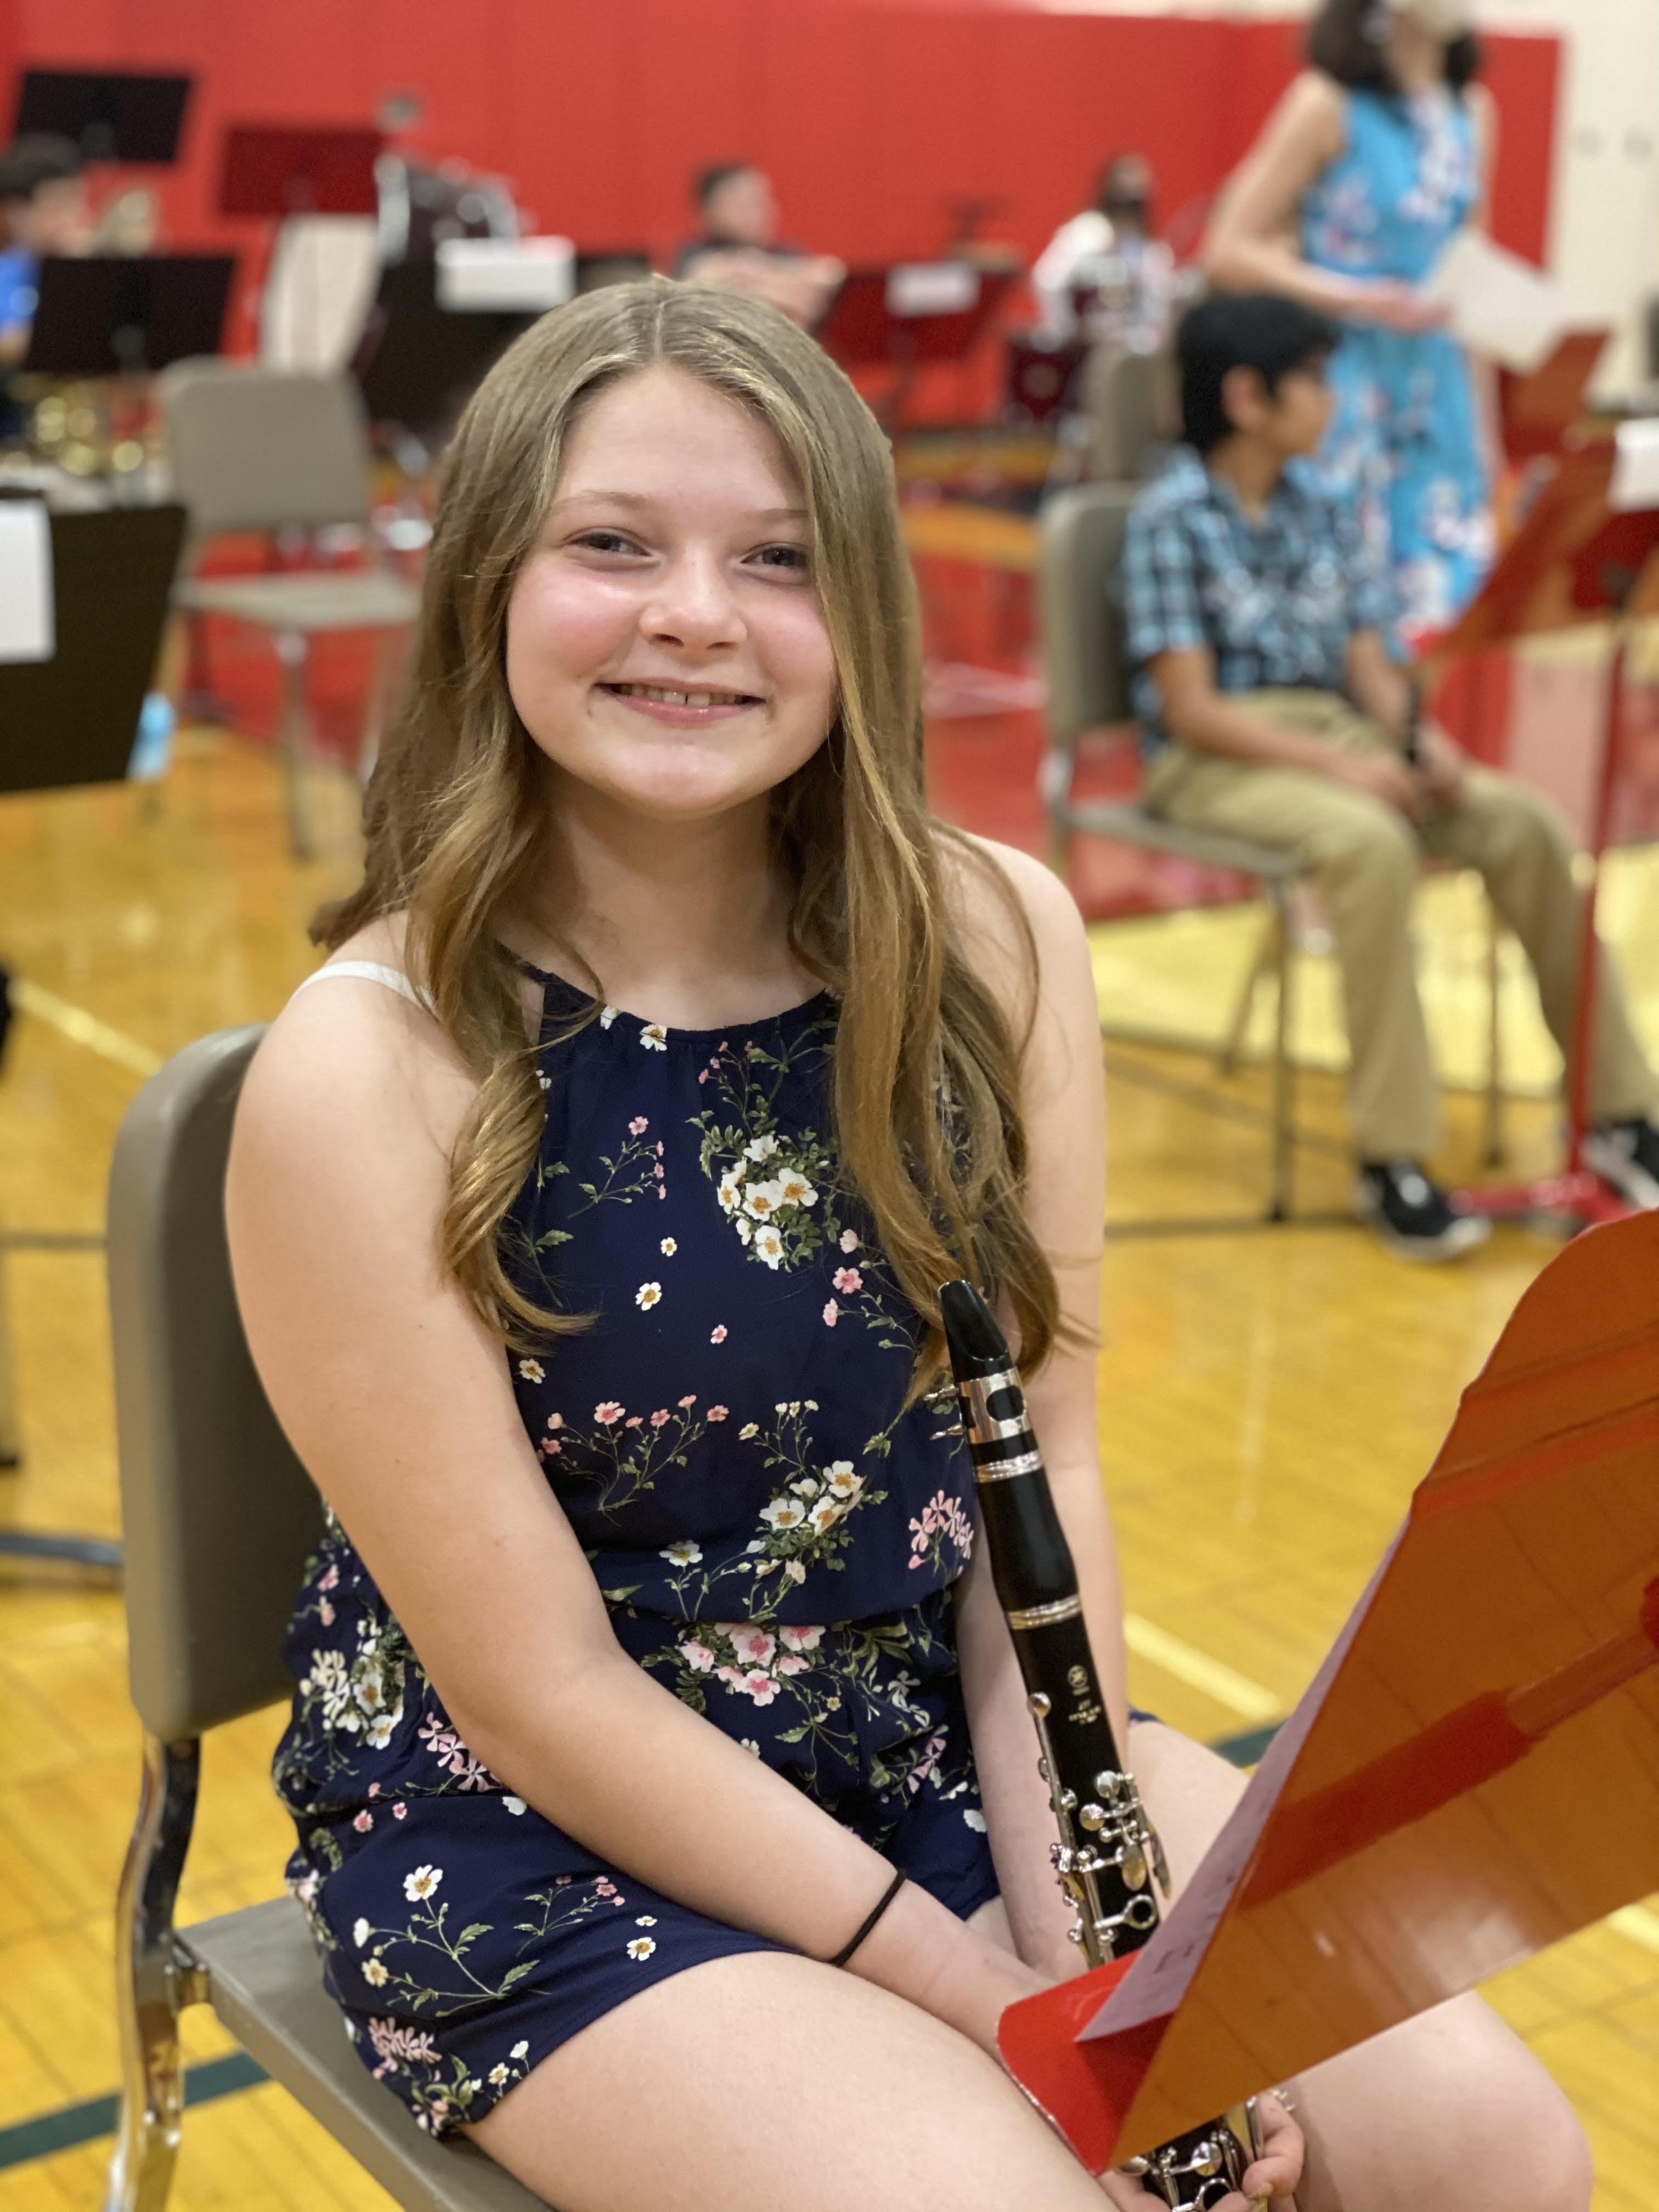 A student holding a clarinet and smiling at the camera